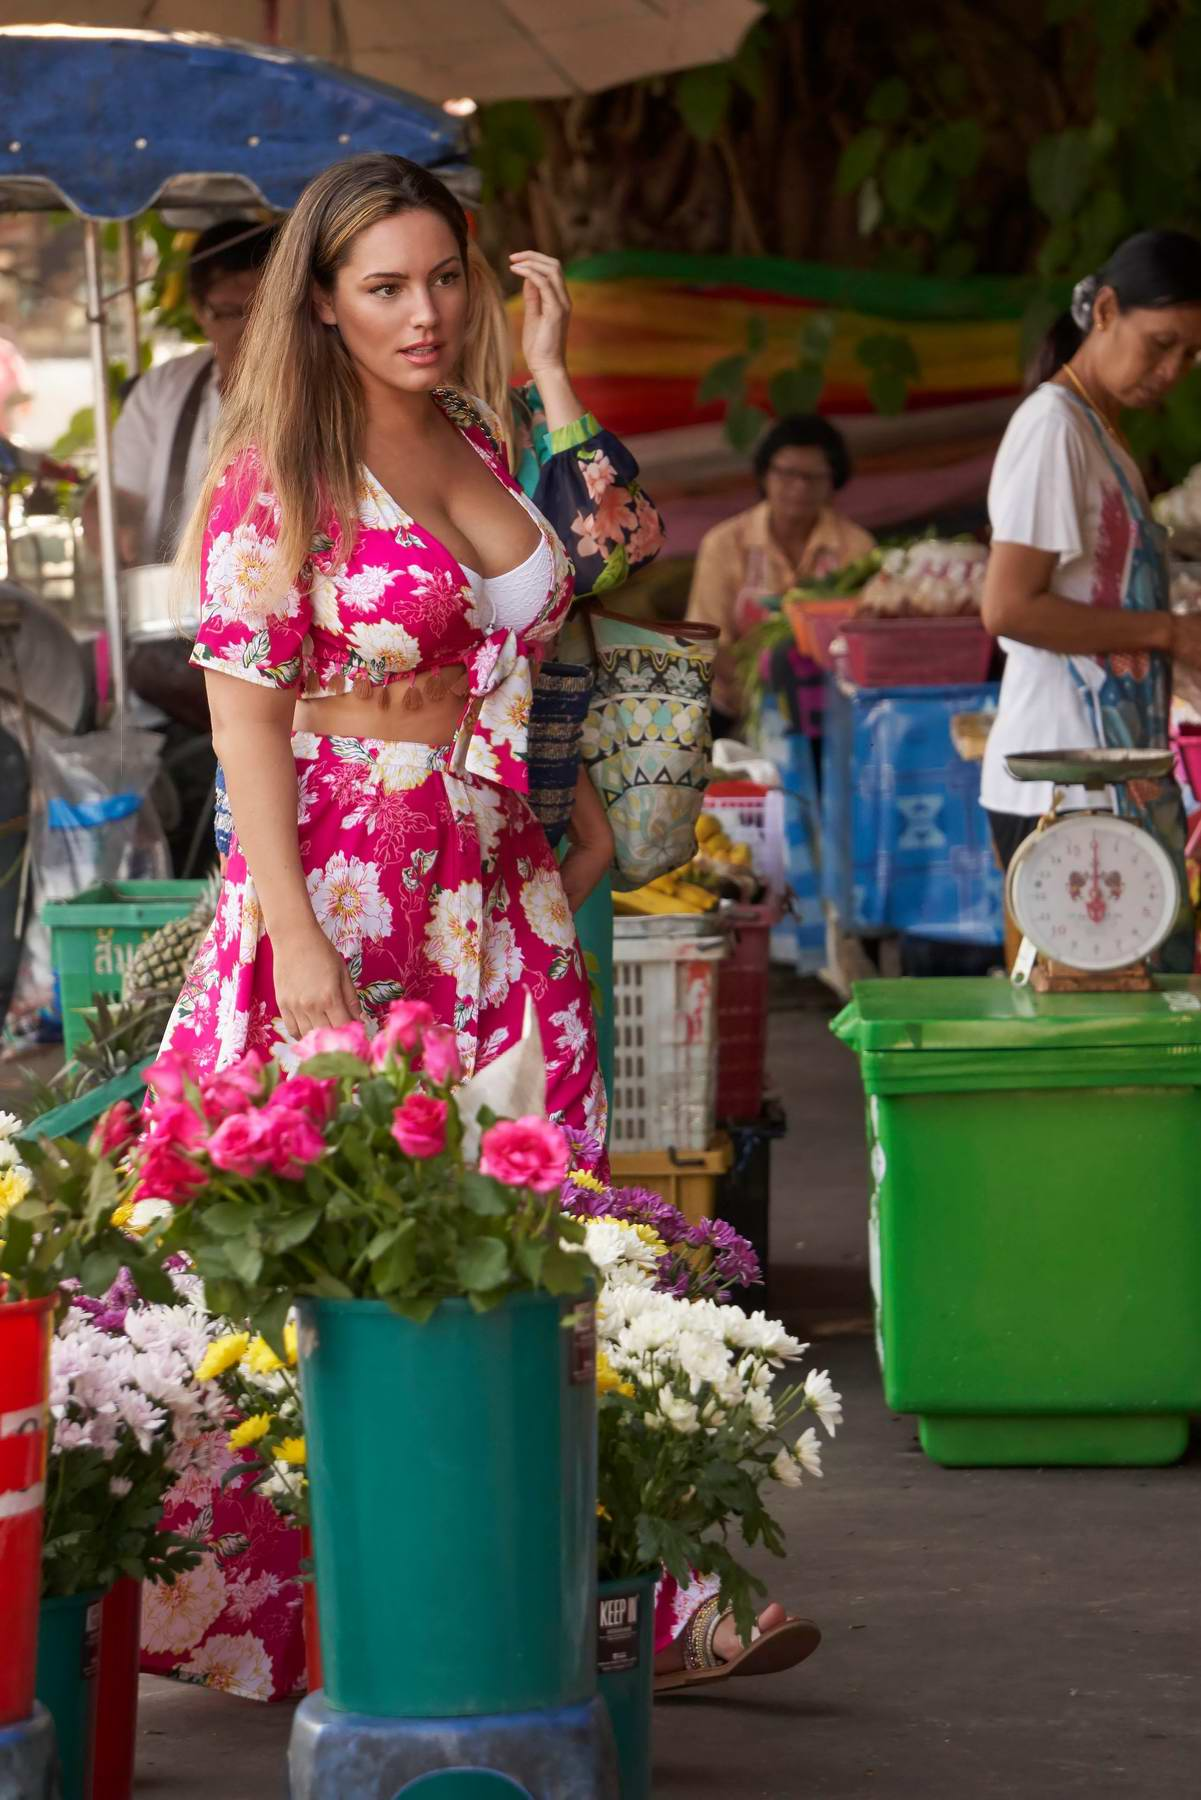 Kelly Brook wears a pink floral print dress while shopping fruits in Phuket, Thailand